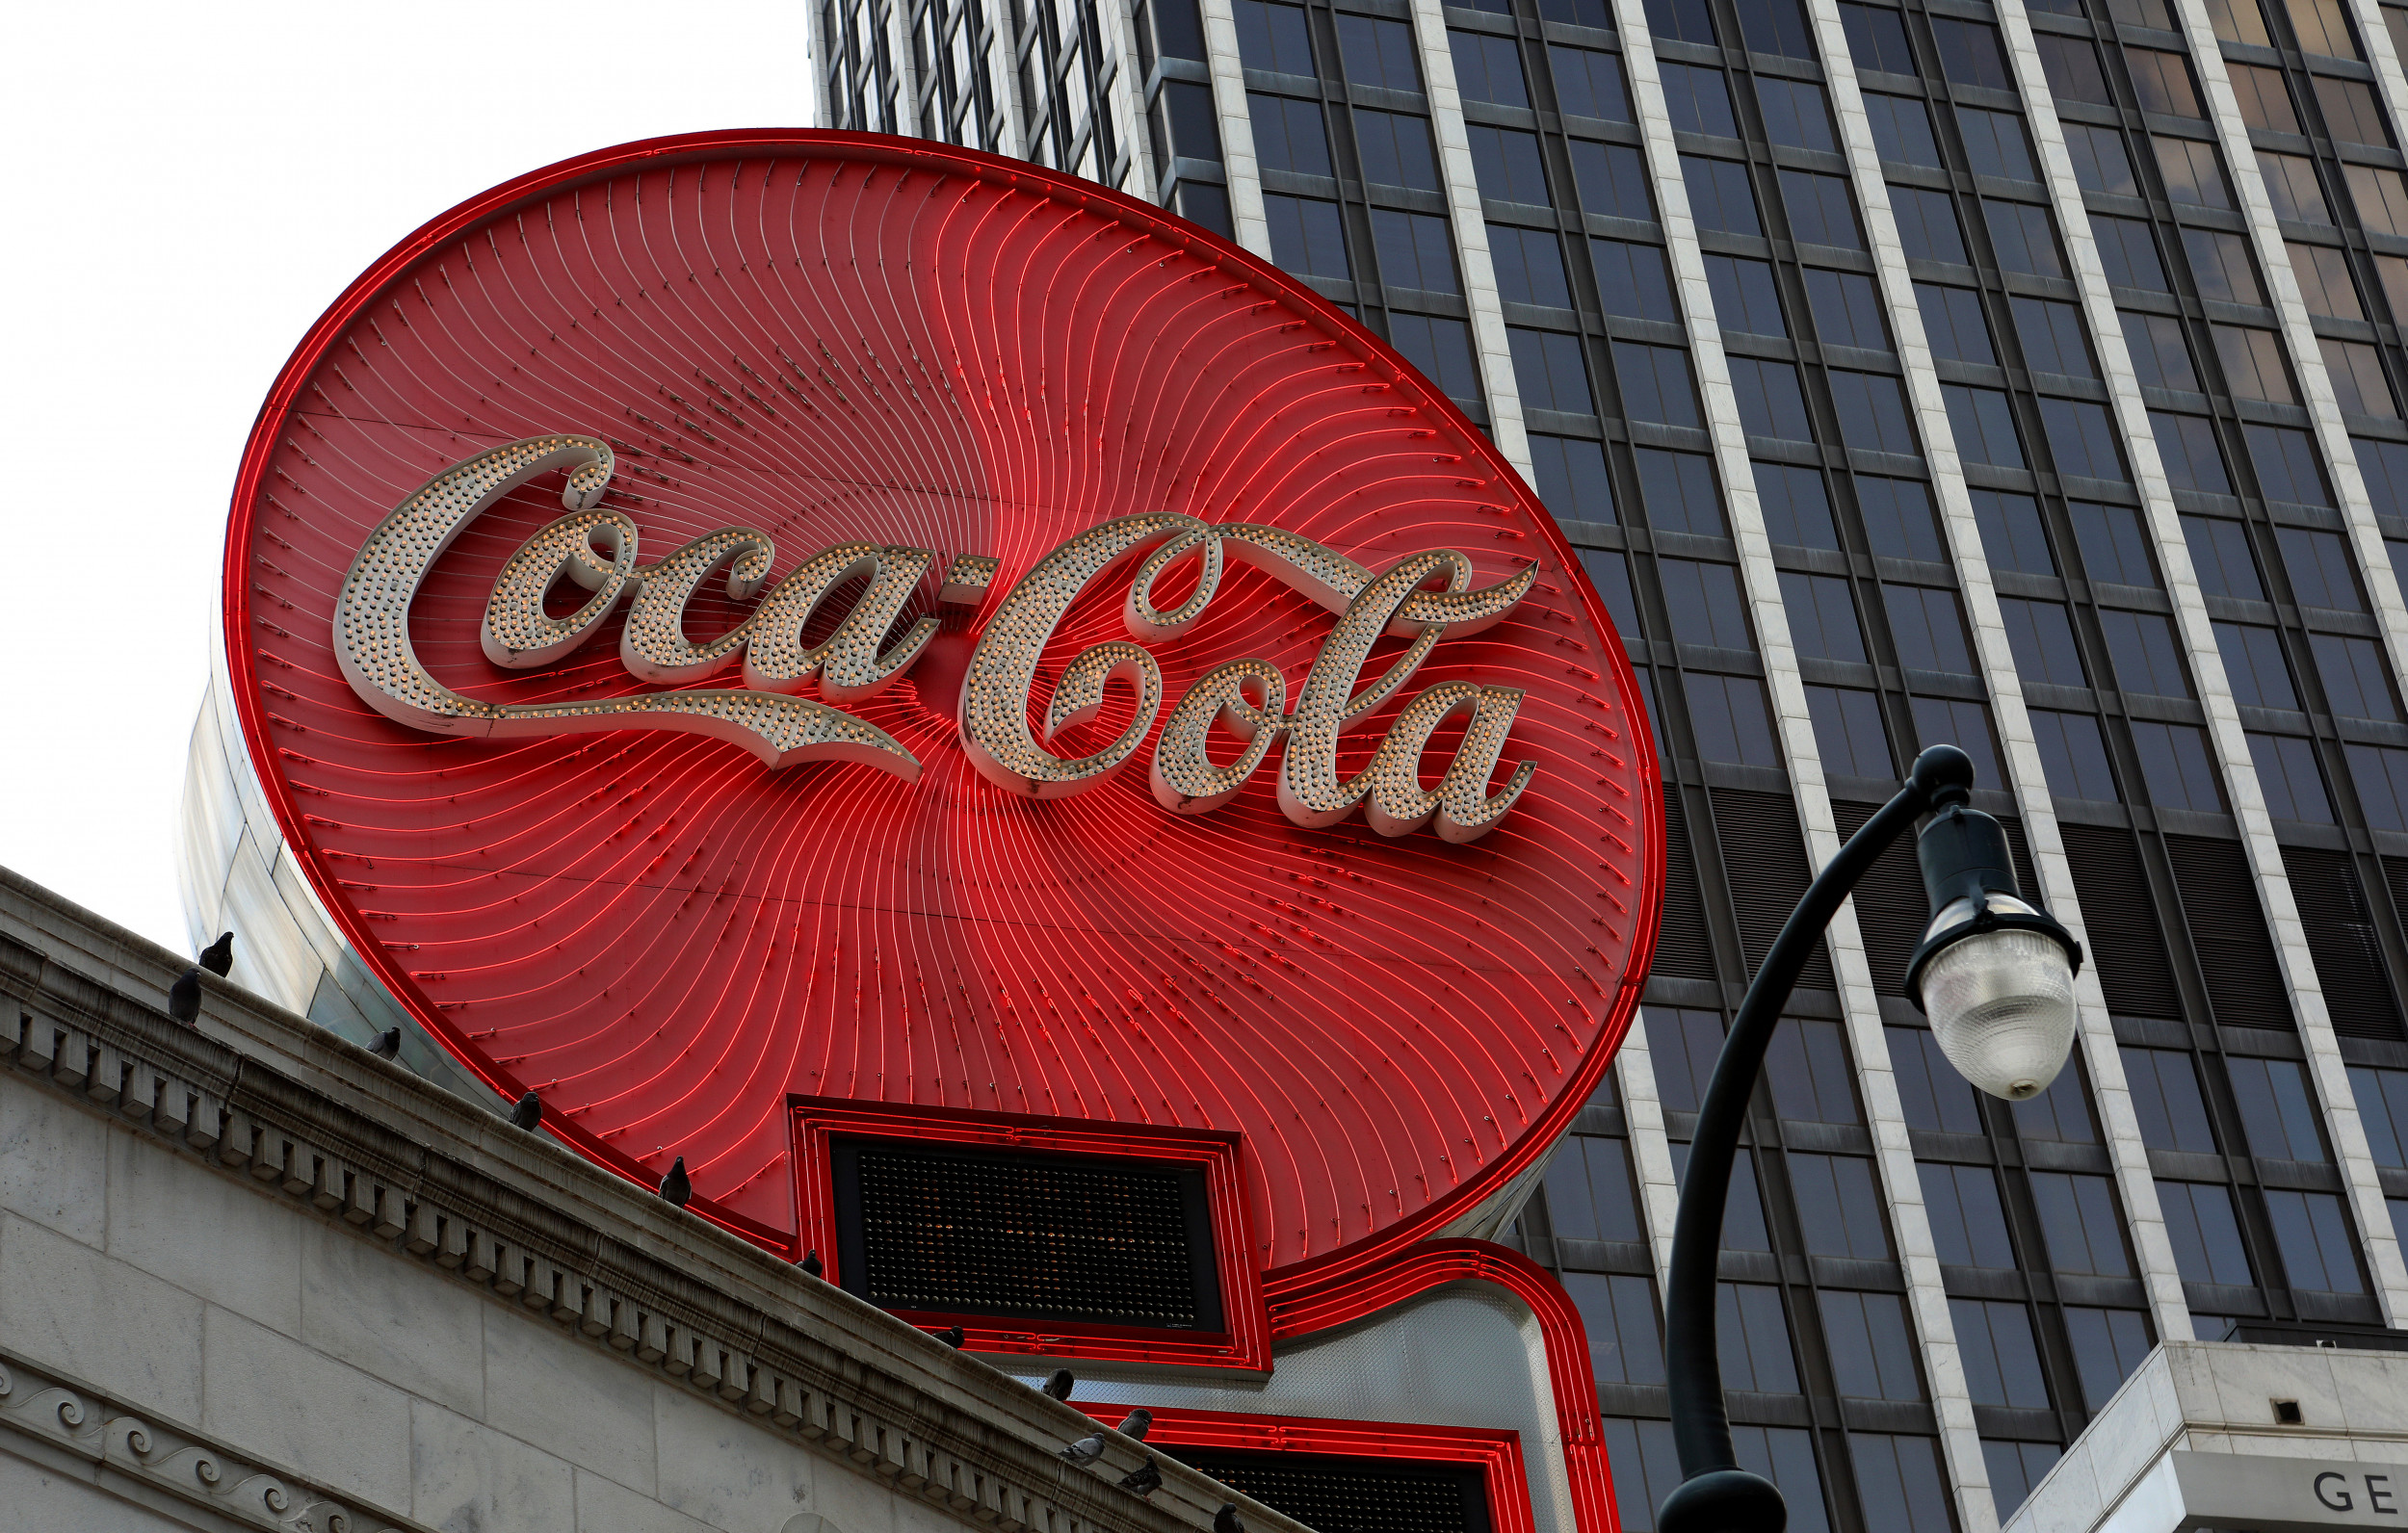 Coca-Cola Dodges Questions on Chinese Repression After Blasting Georgia Law